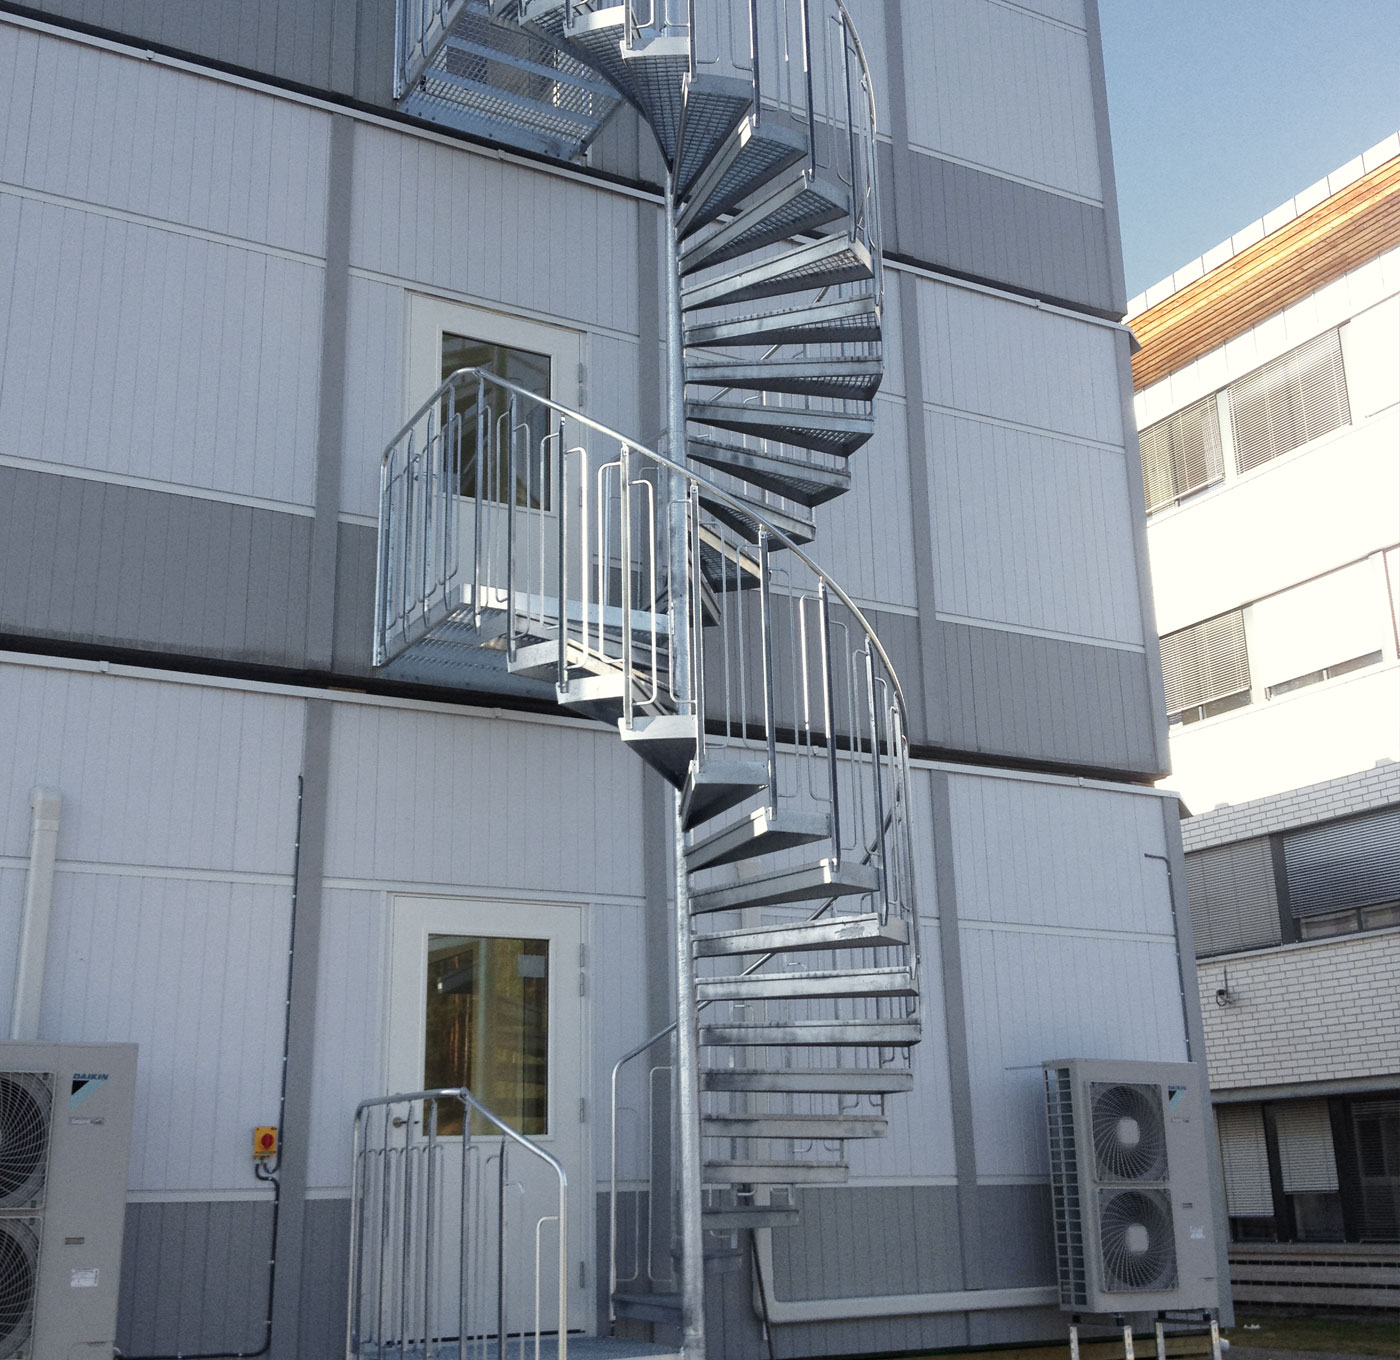 Spiral staircase with steps of grating and childproof railing